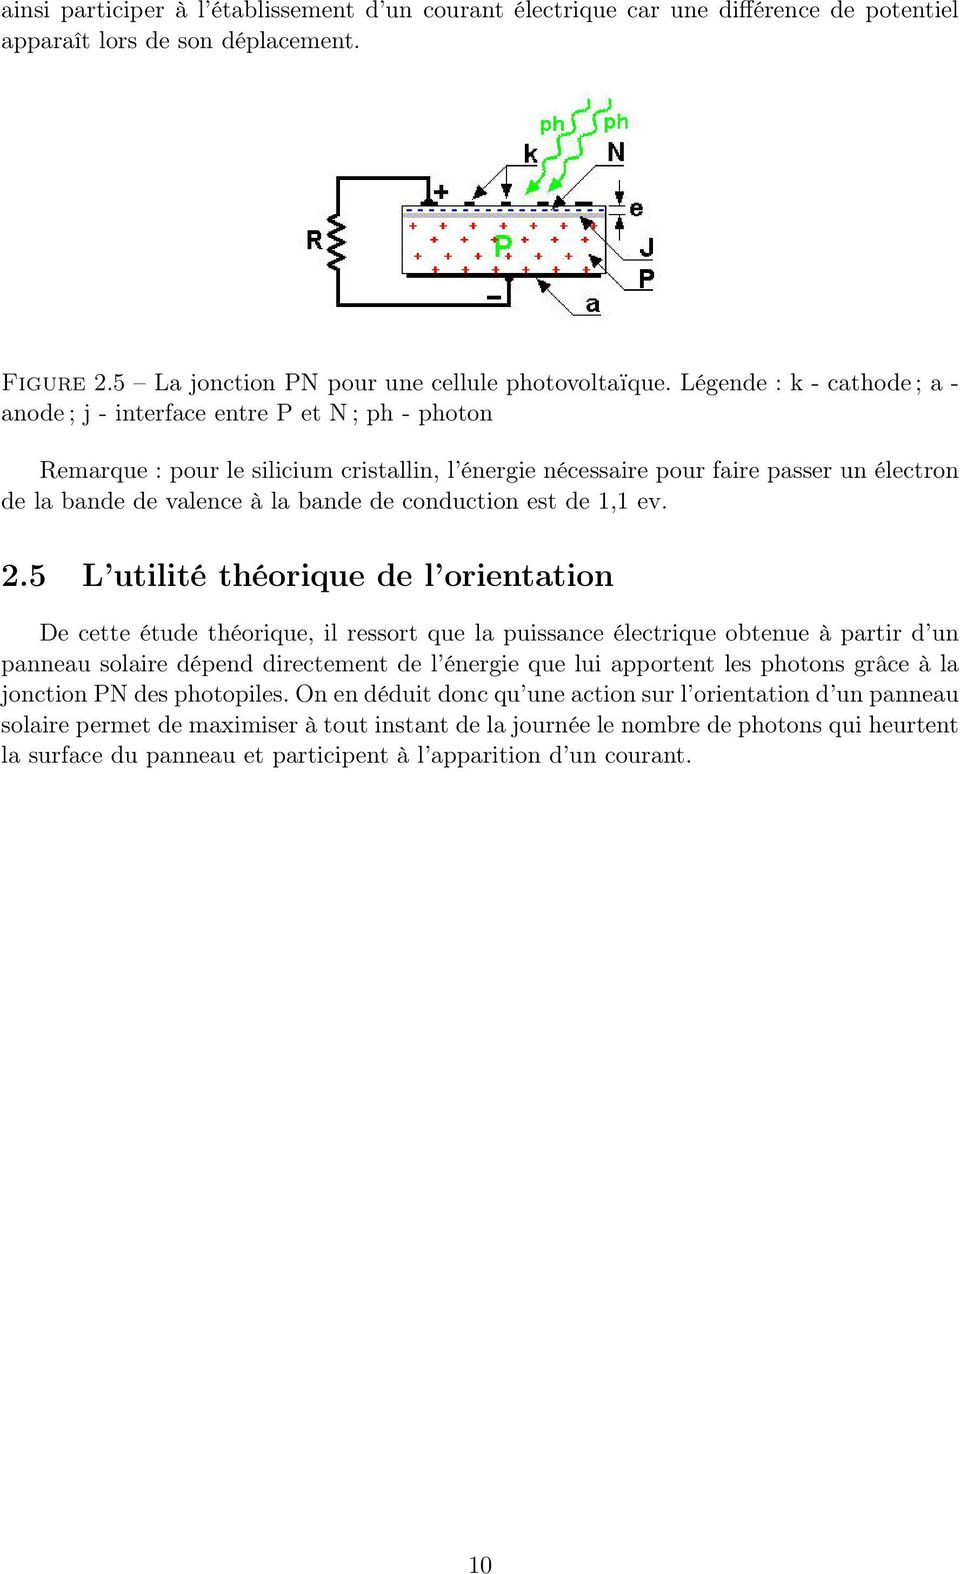 bande de conduction est de 1,1 ev. 2.